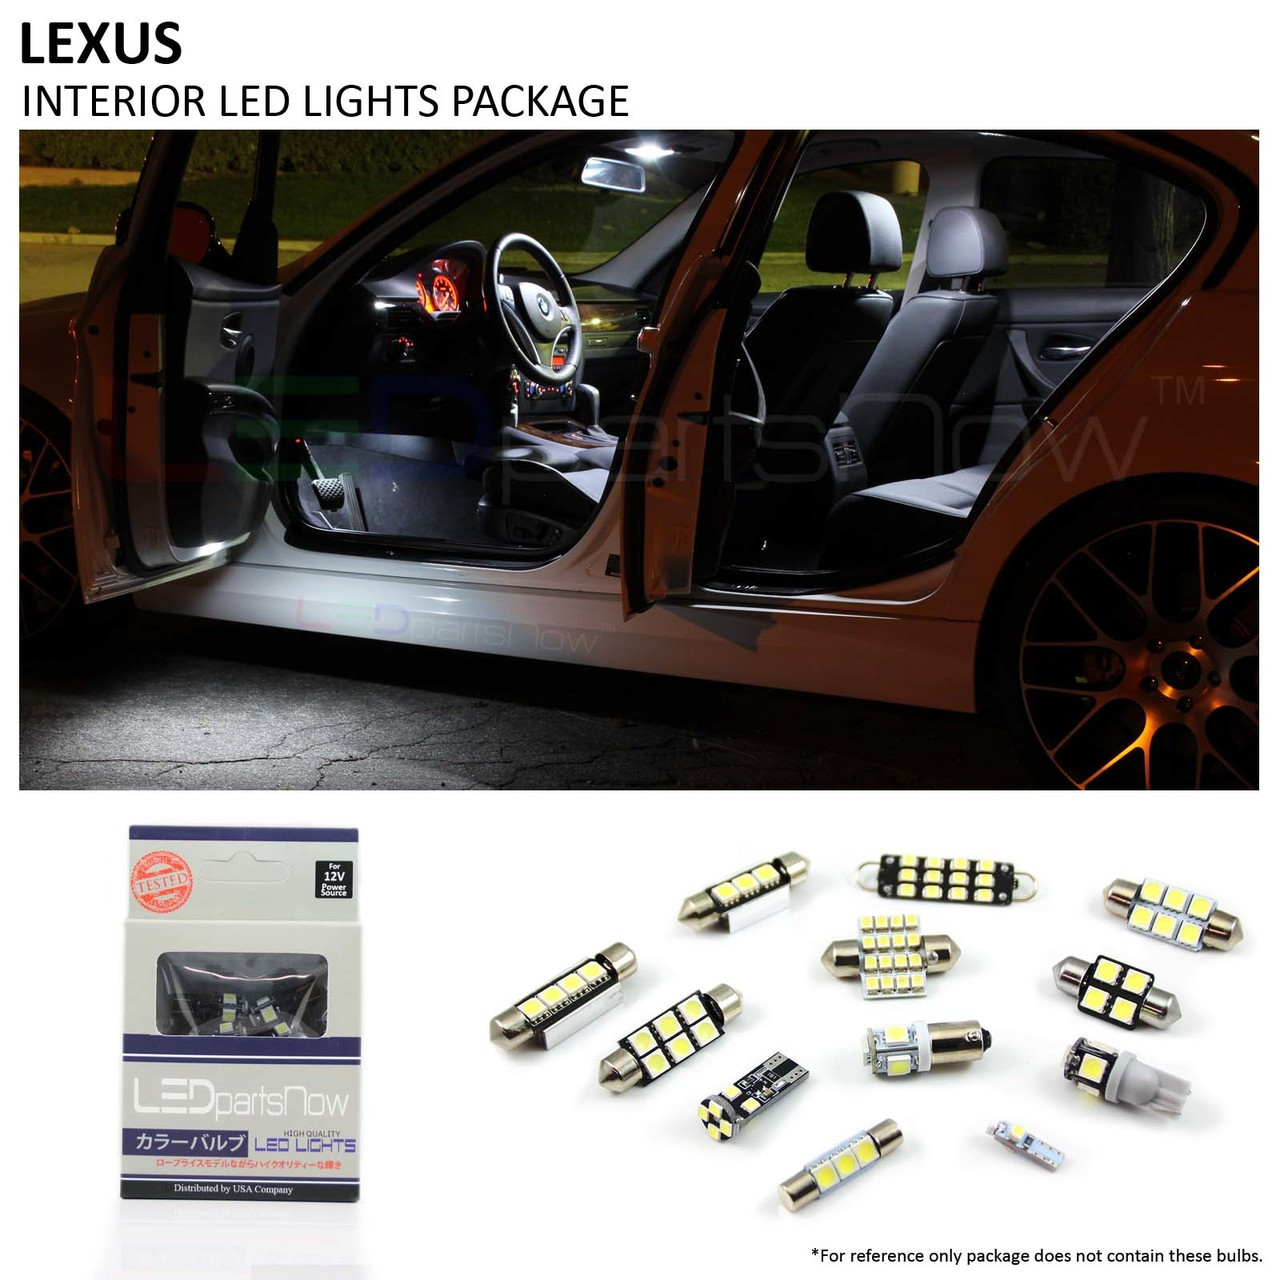 hight resolution of 2010 2015 lexus rx interior led lights package image 1 lexus rx 450h wiring diagram